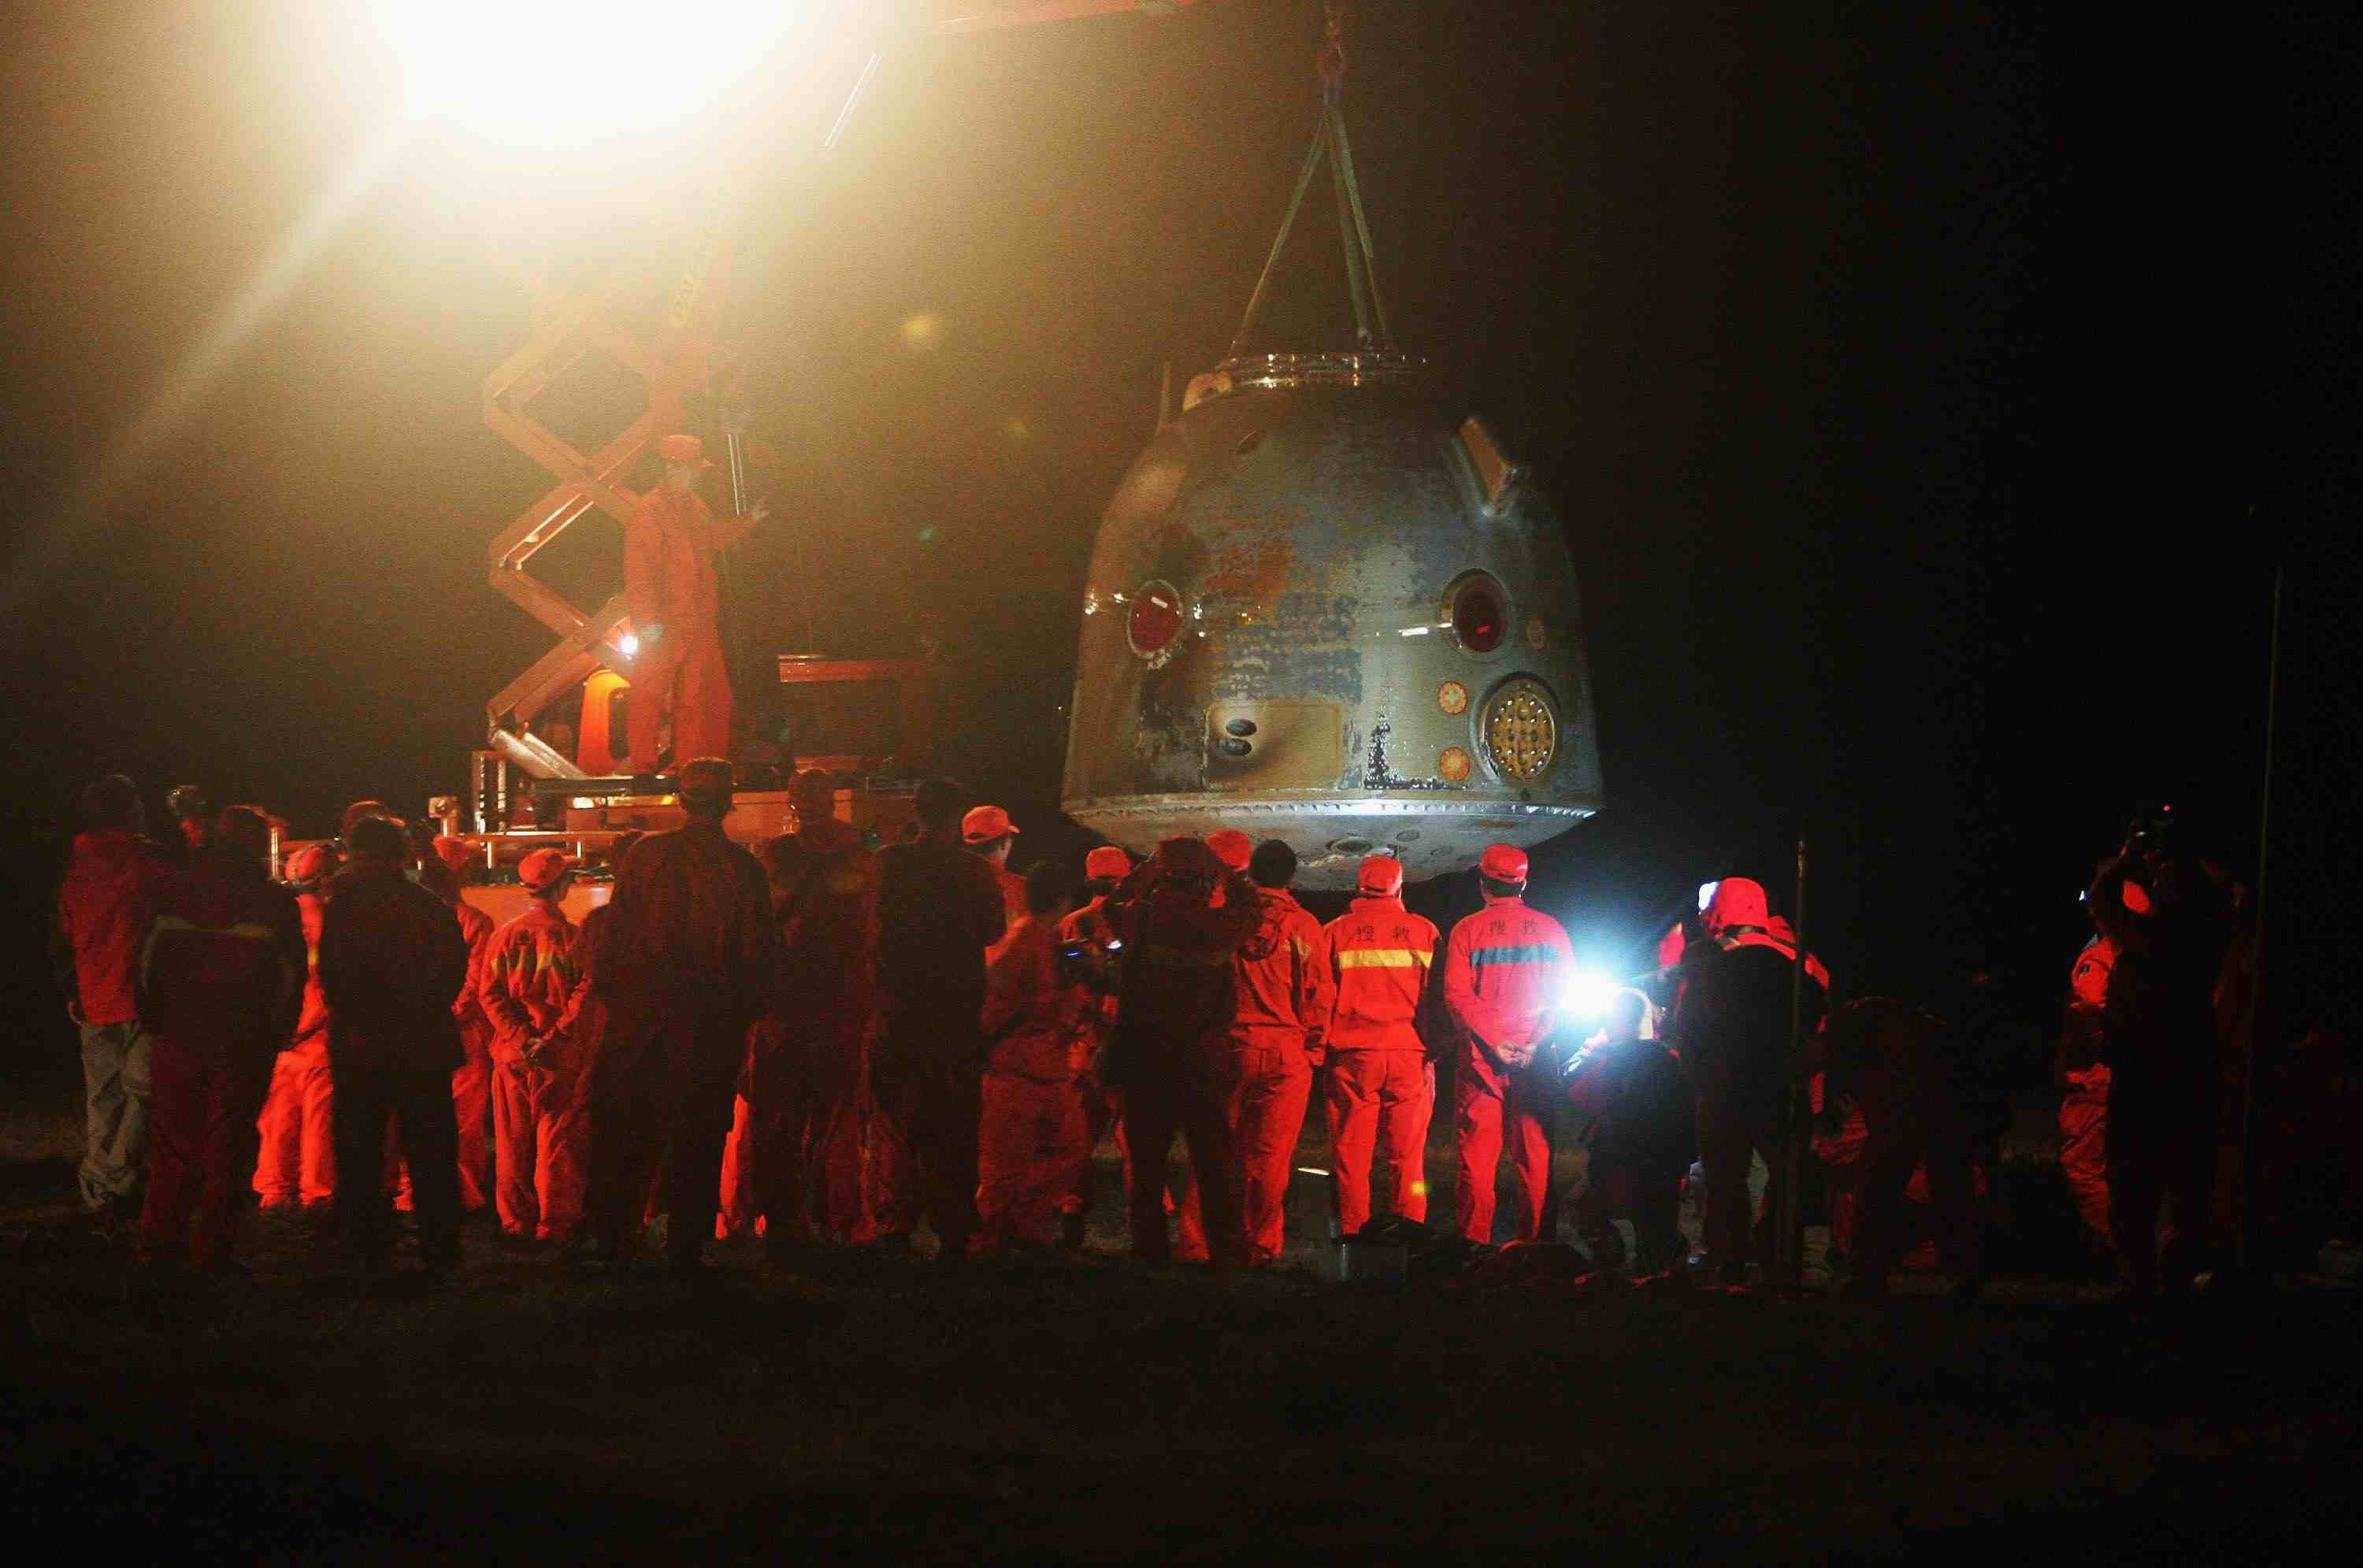 China's Shenzhou VII Spacecraft Returns To Earth